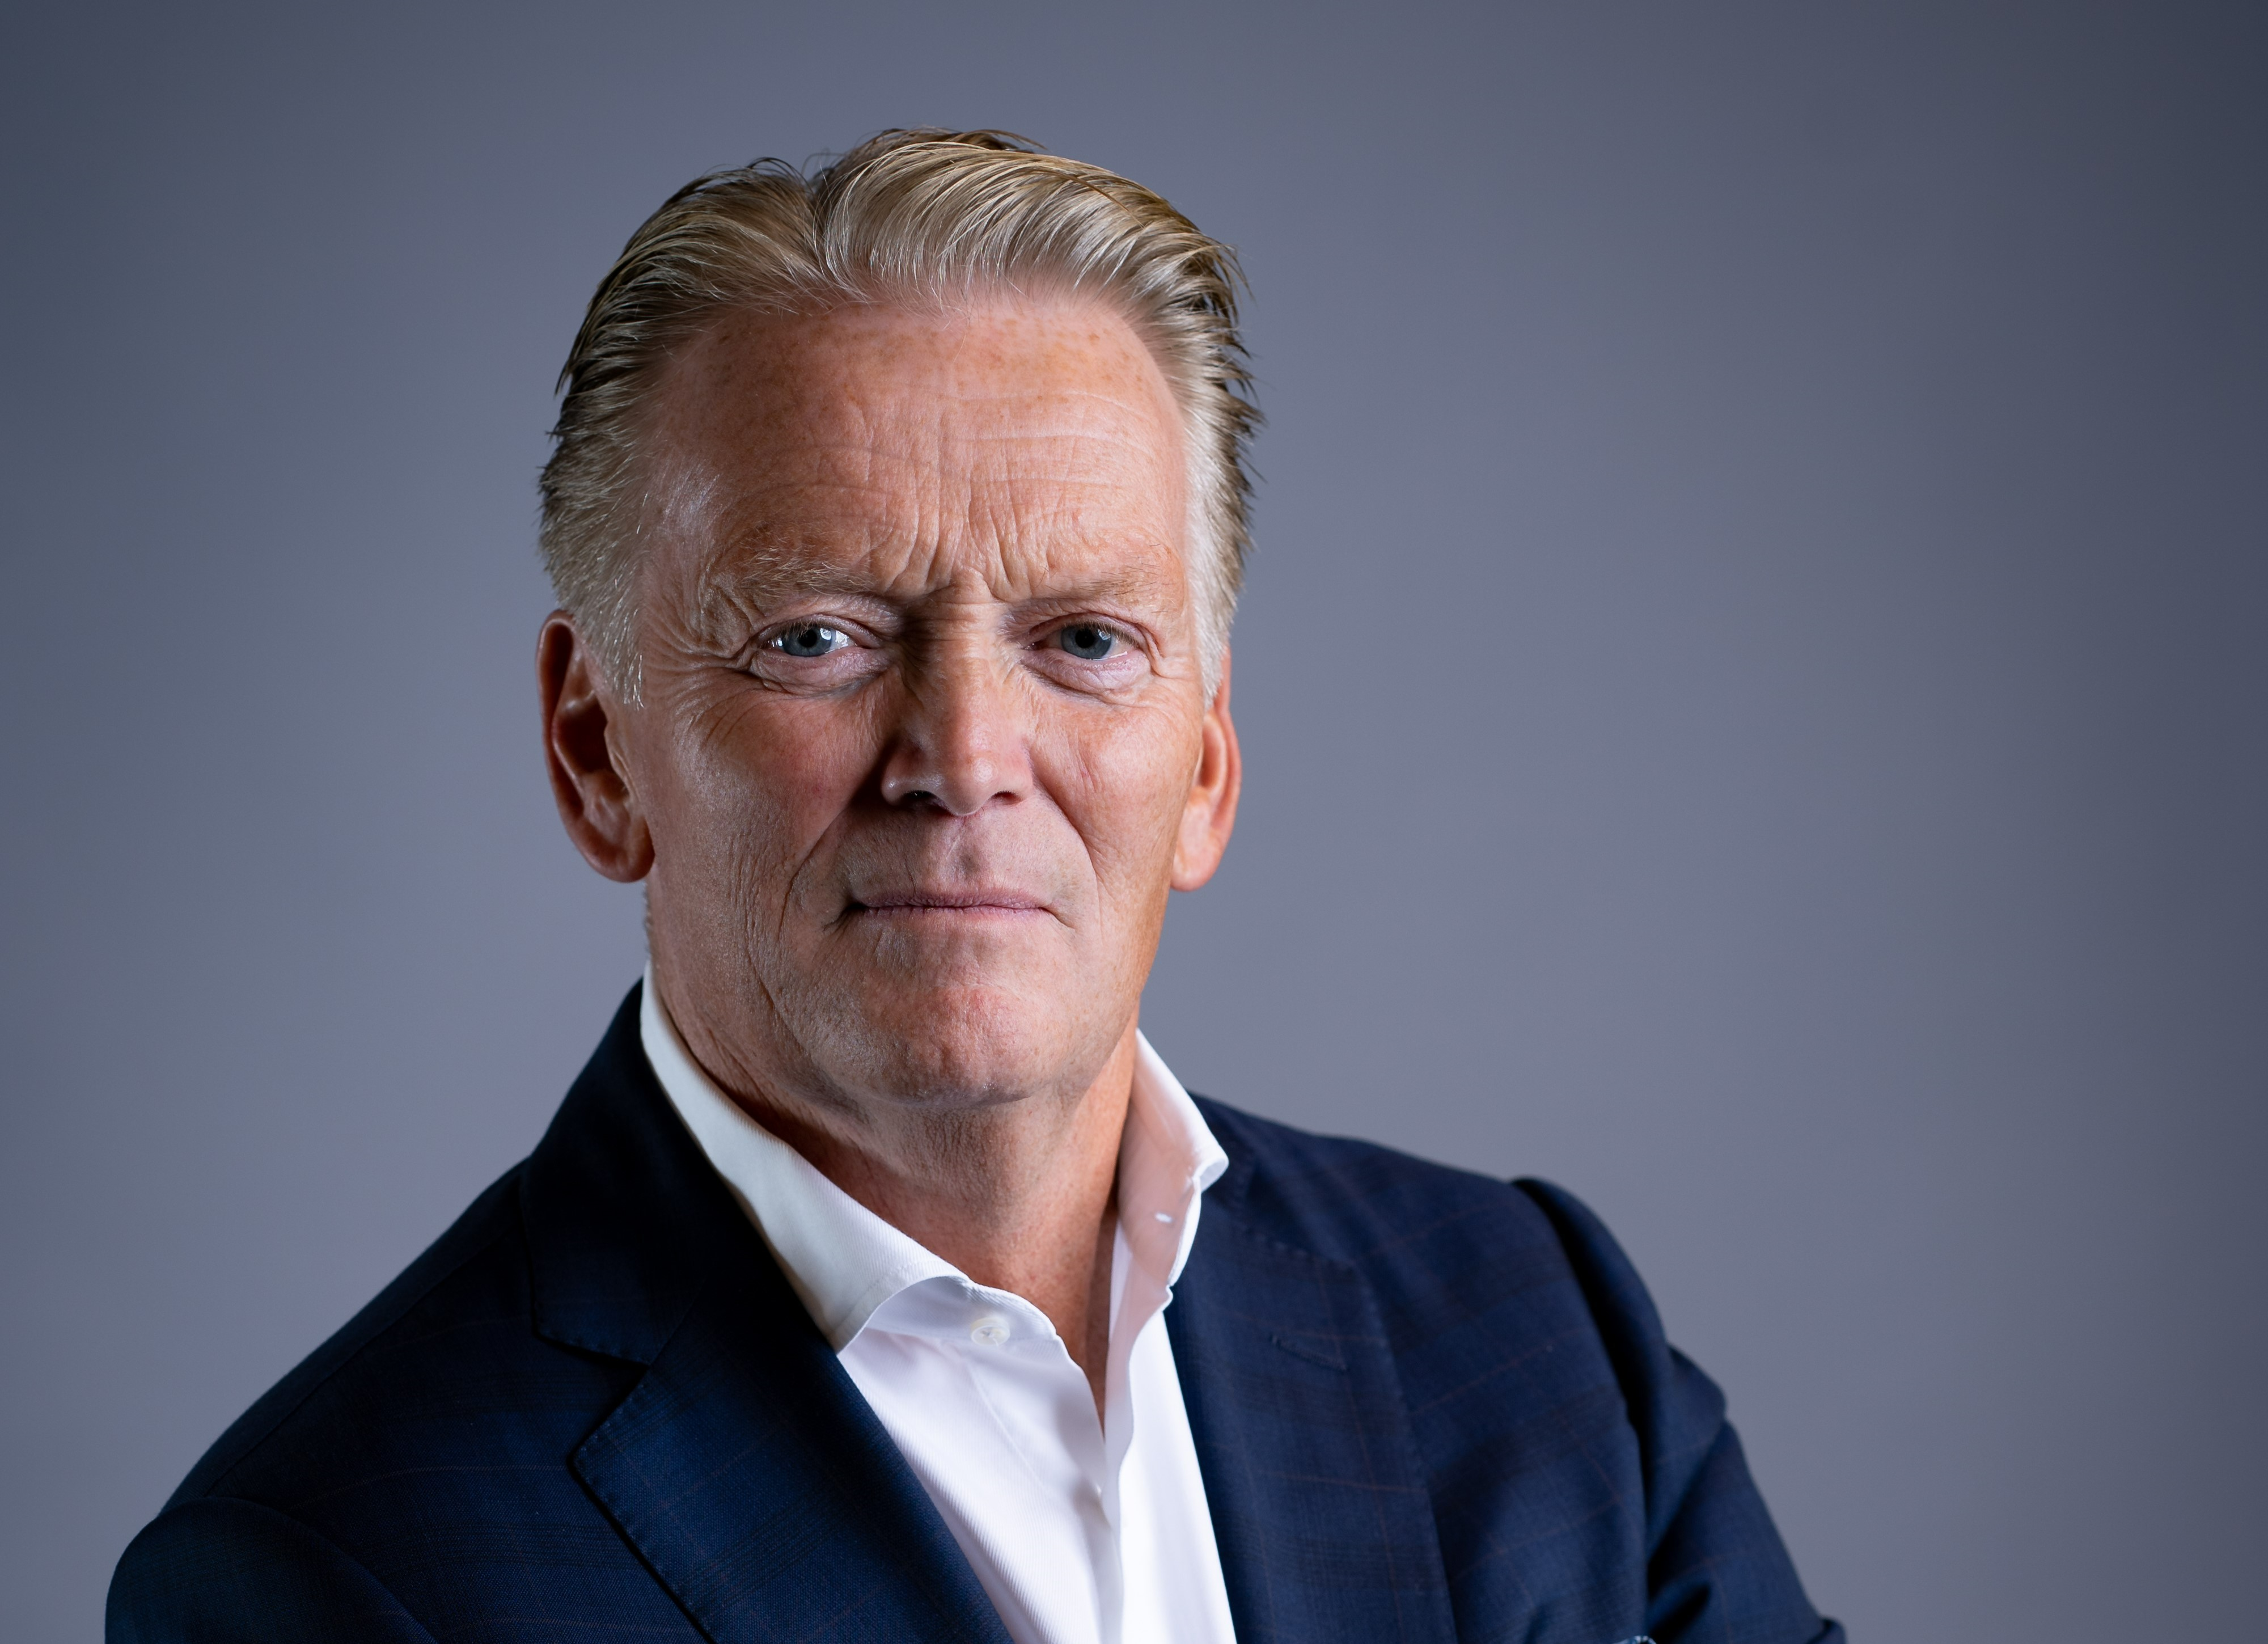 Bjørn Maarud appointed new CEO and Jo Uthus proposed as new Chairman